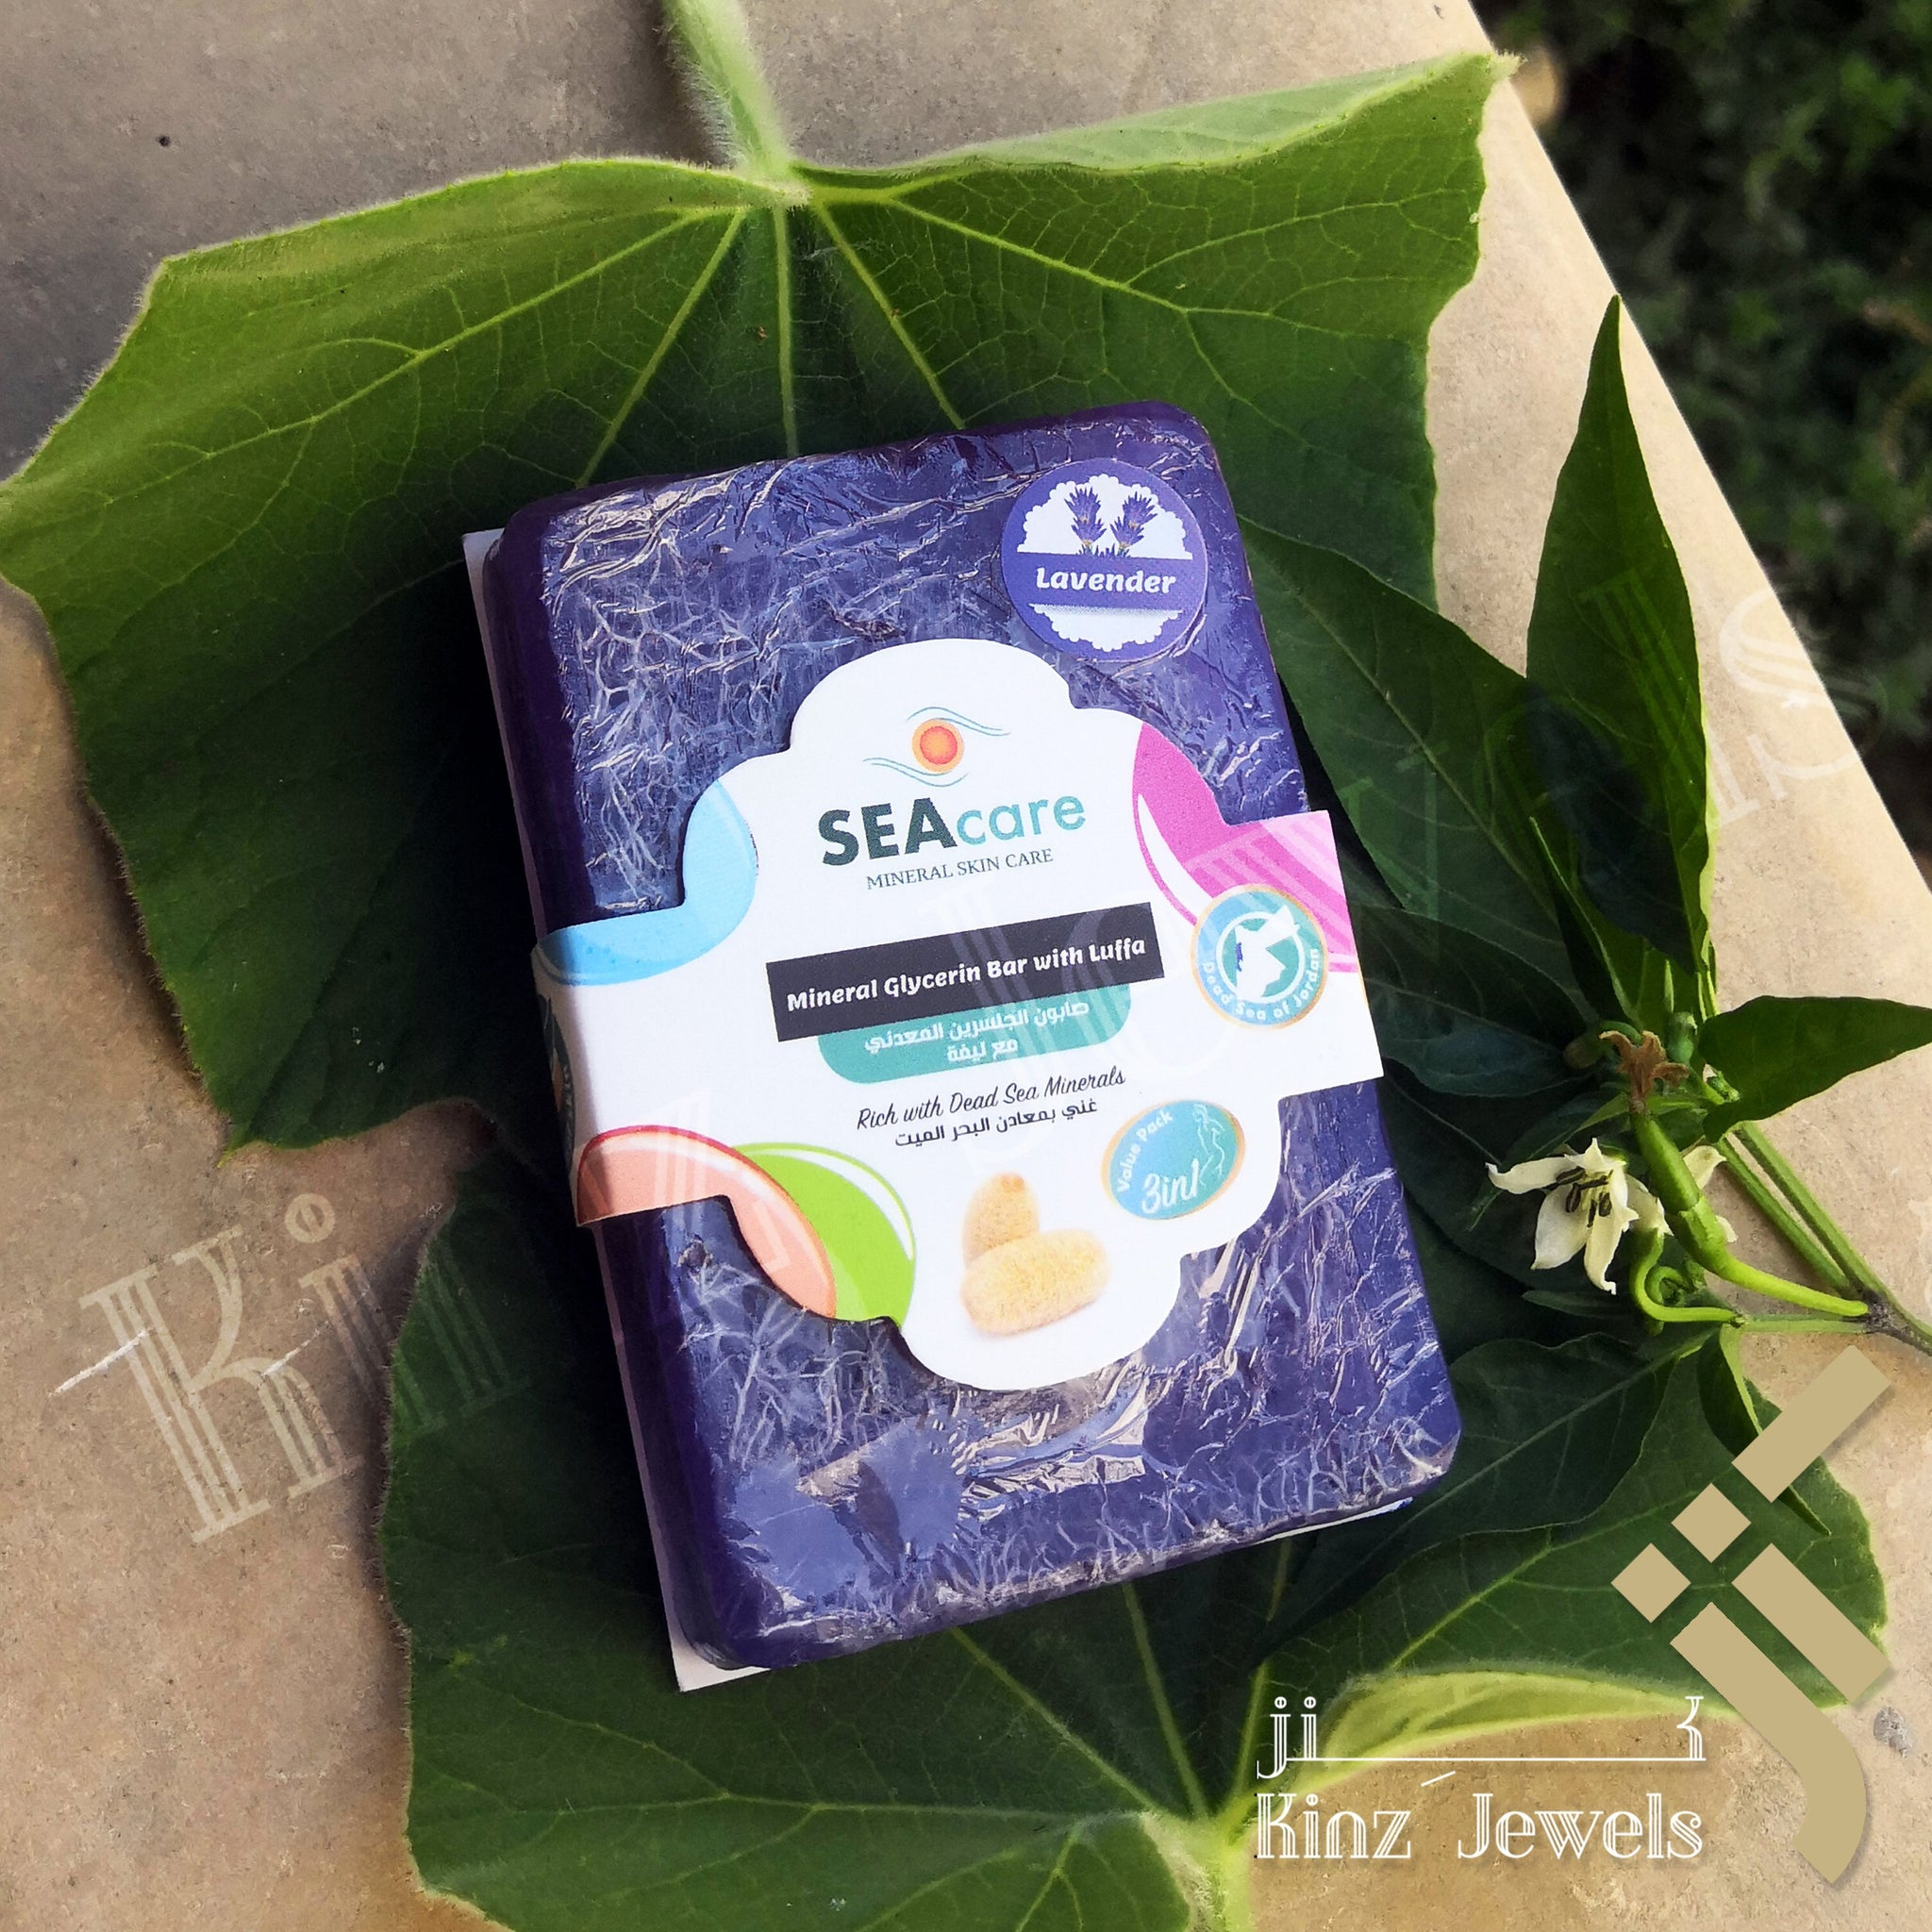 kinzjewels - Lavender Dead Sea Minerals Glycerin Cleansing Bar With Natural Lufah